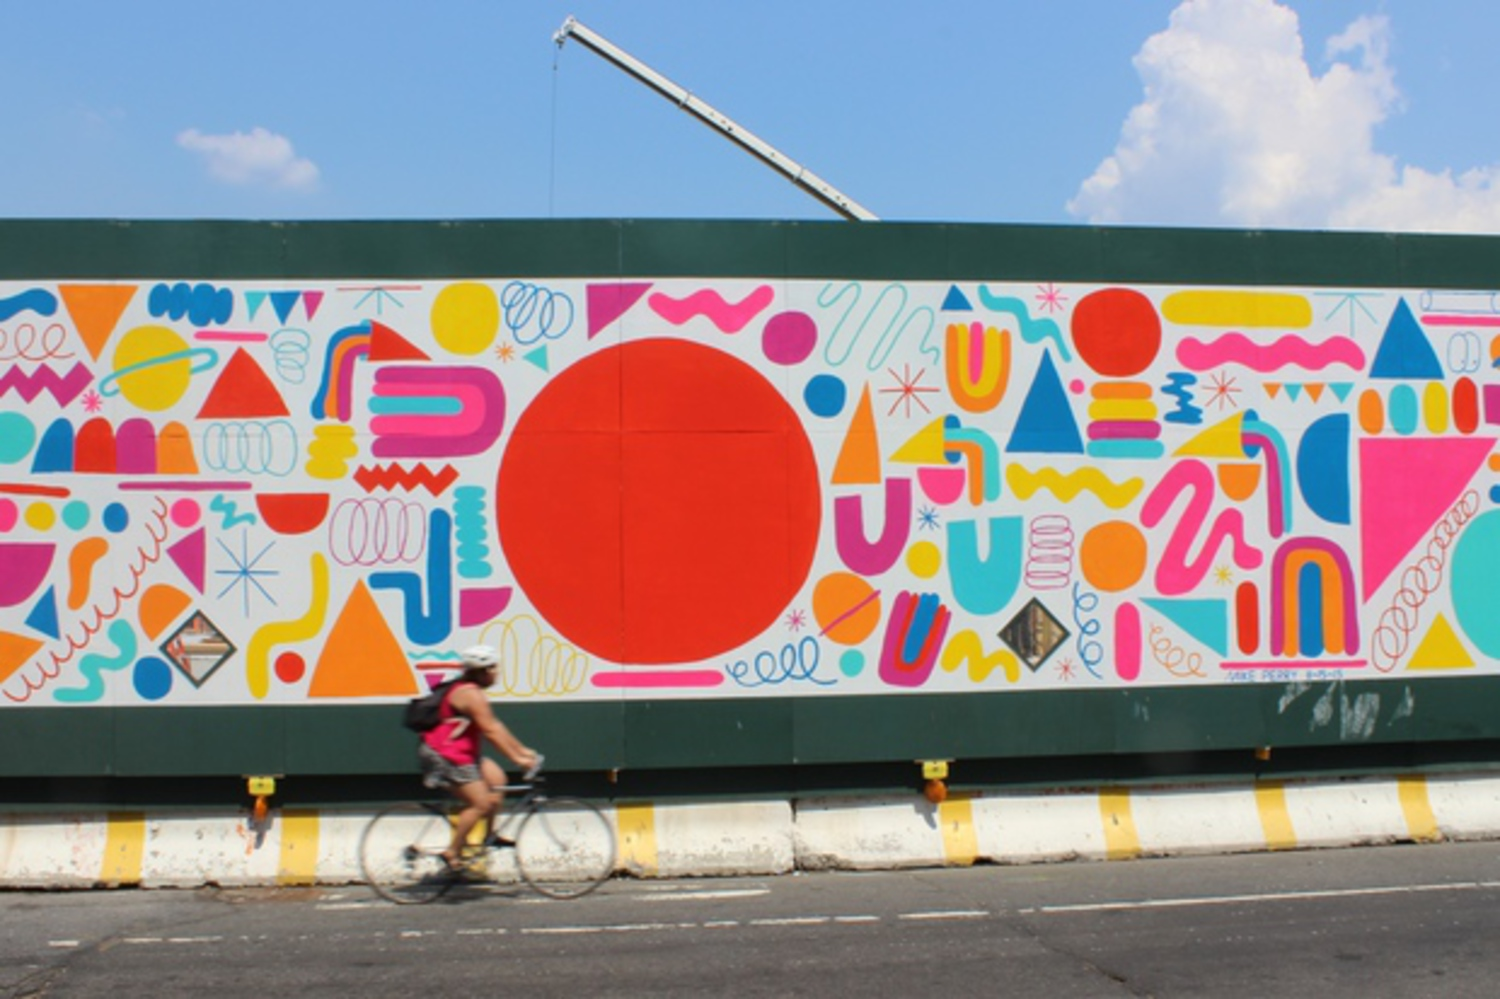 Lead artist Mike Perry's mural shows off his bold, bright style, which usually includes a lot of colorful squiggles.